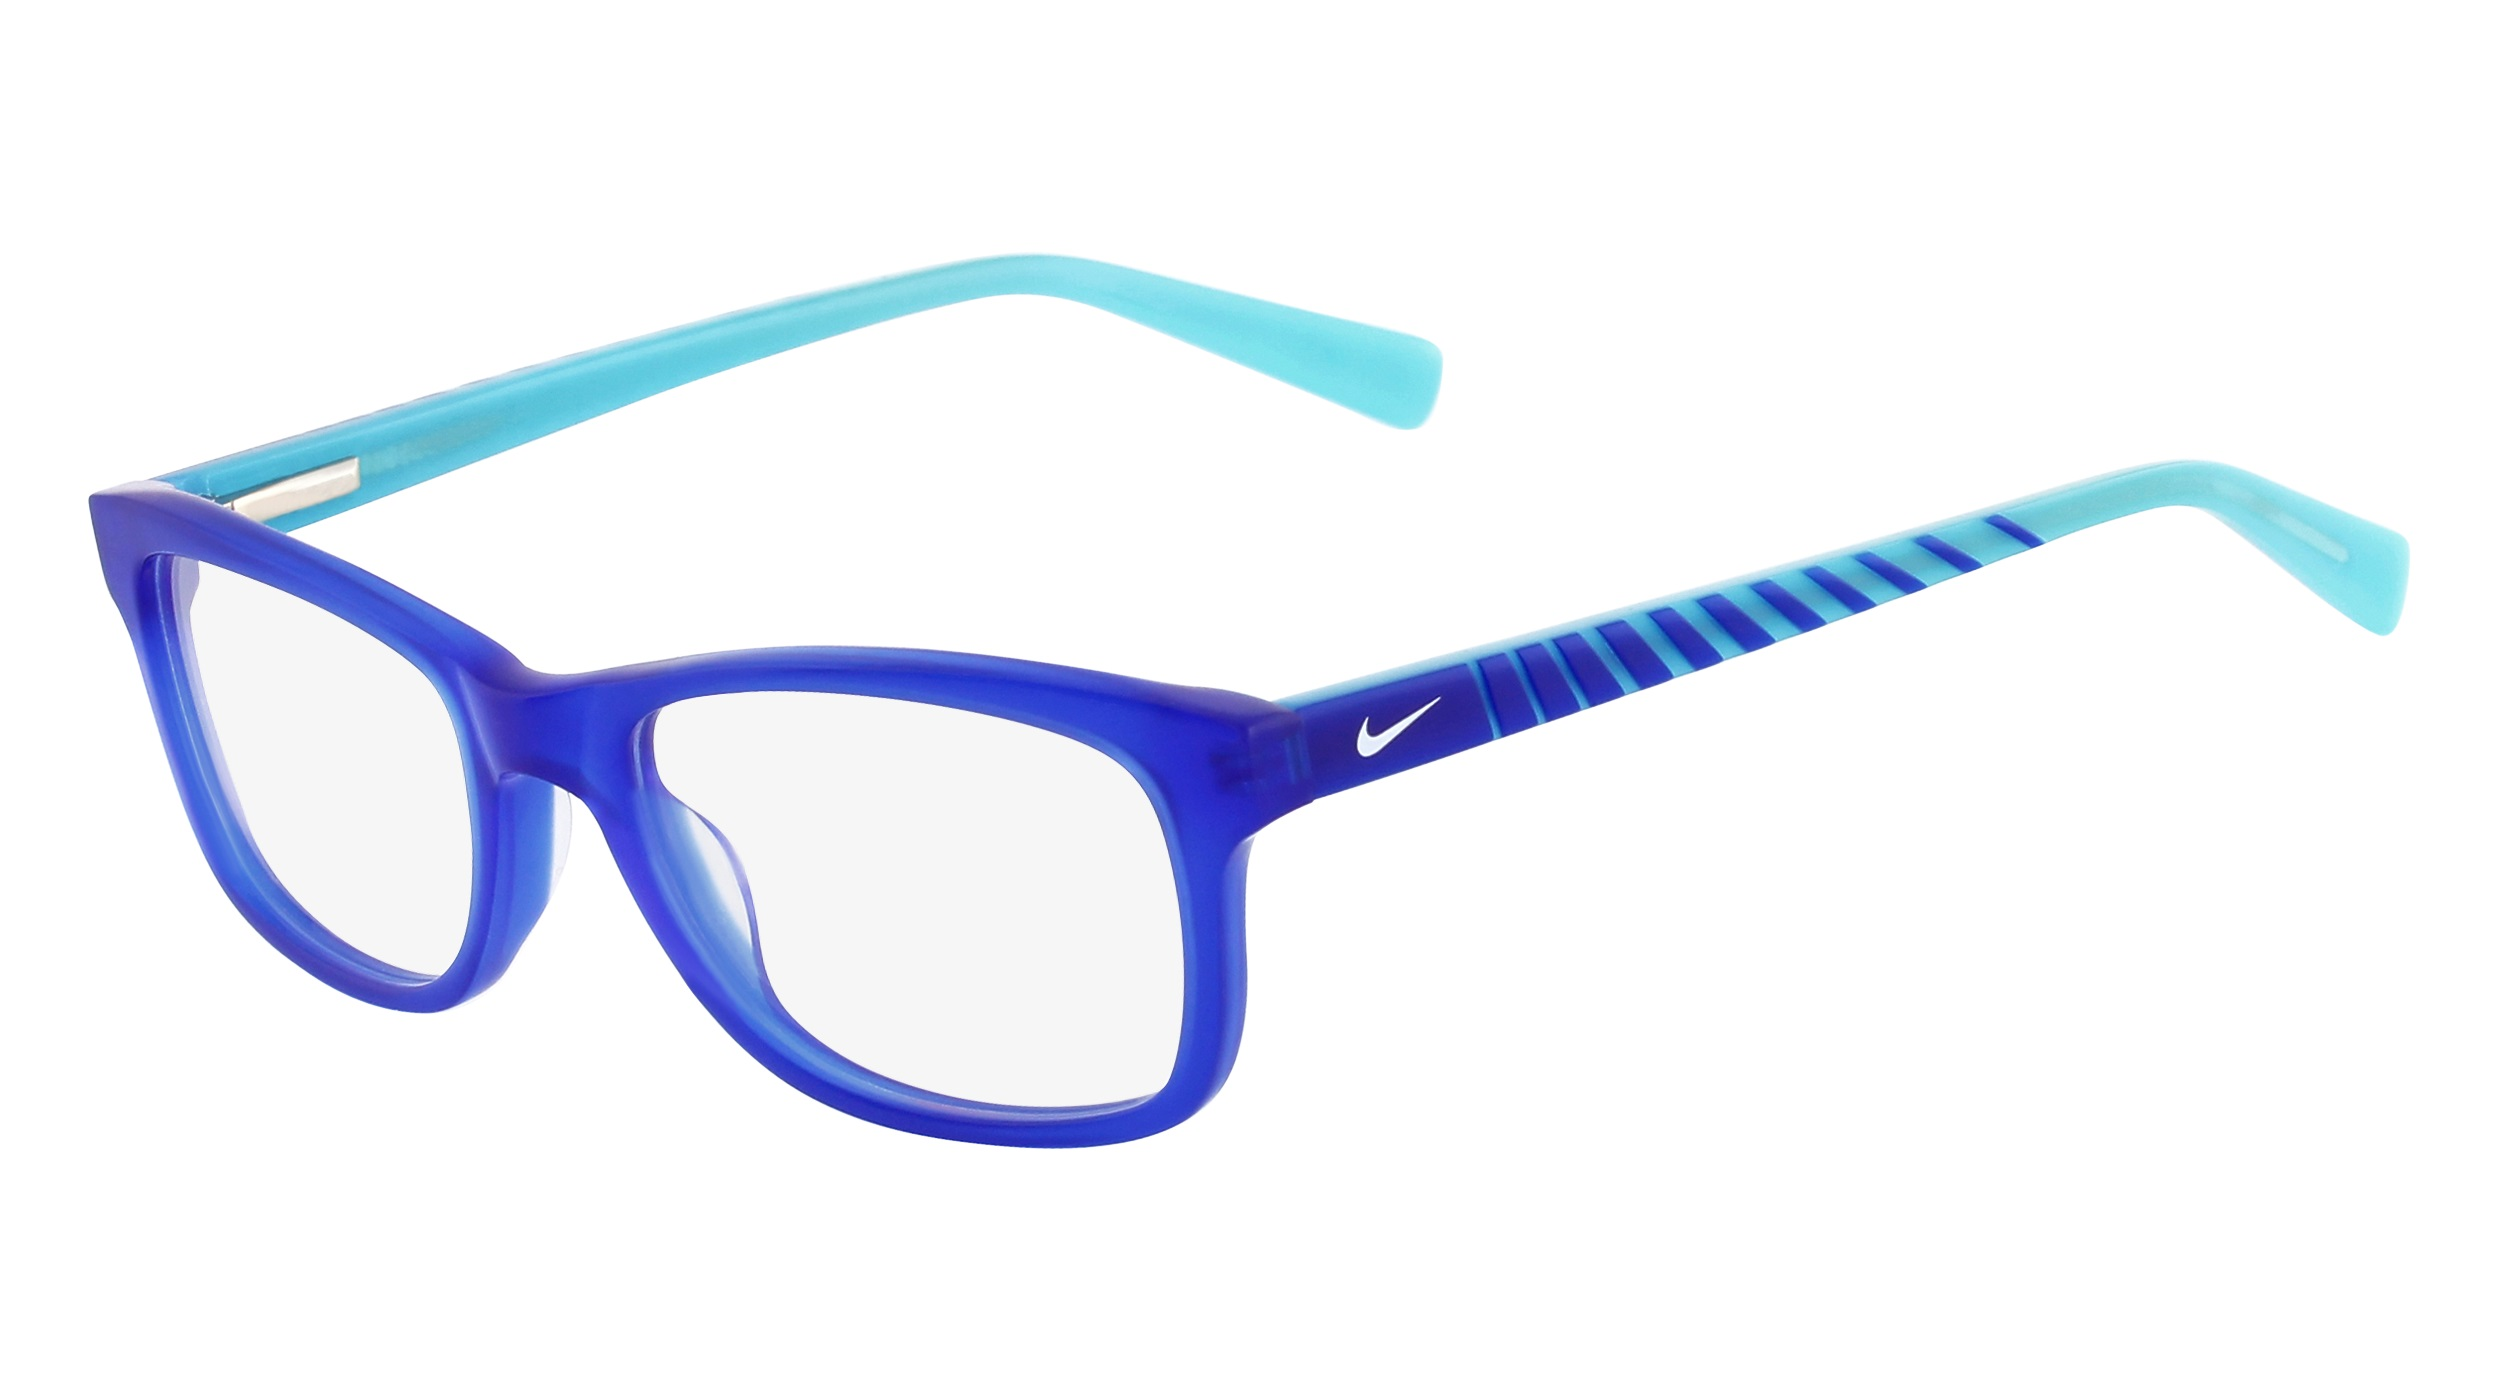 330b6fc9e511 Nike 5509-450 Kids Eyeglasses Game Royal Nike5509-450 - Optiwow